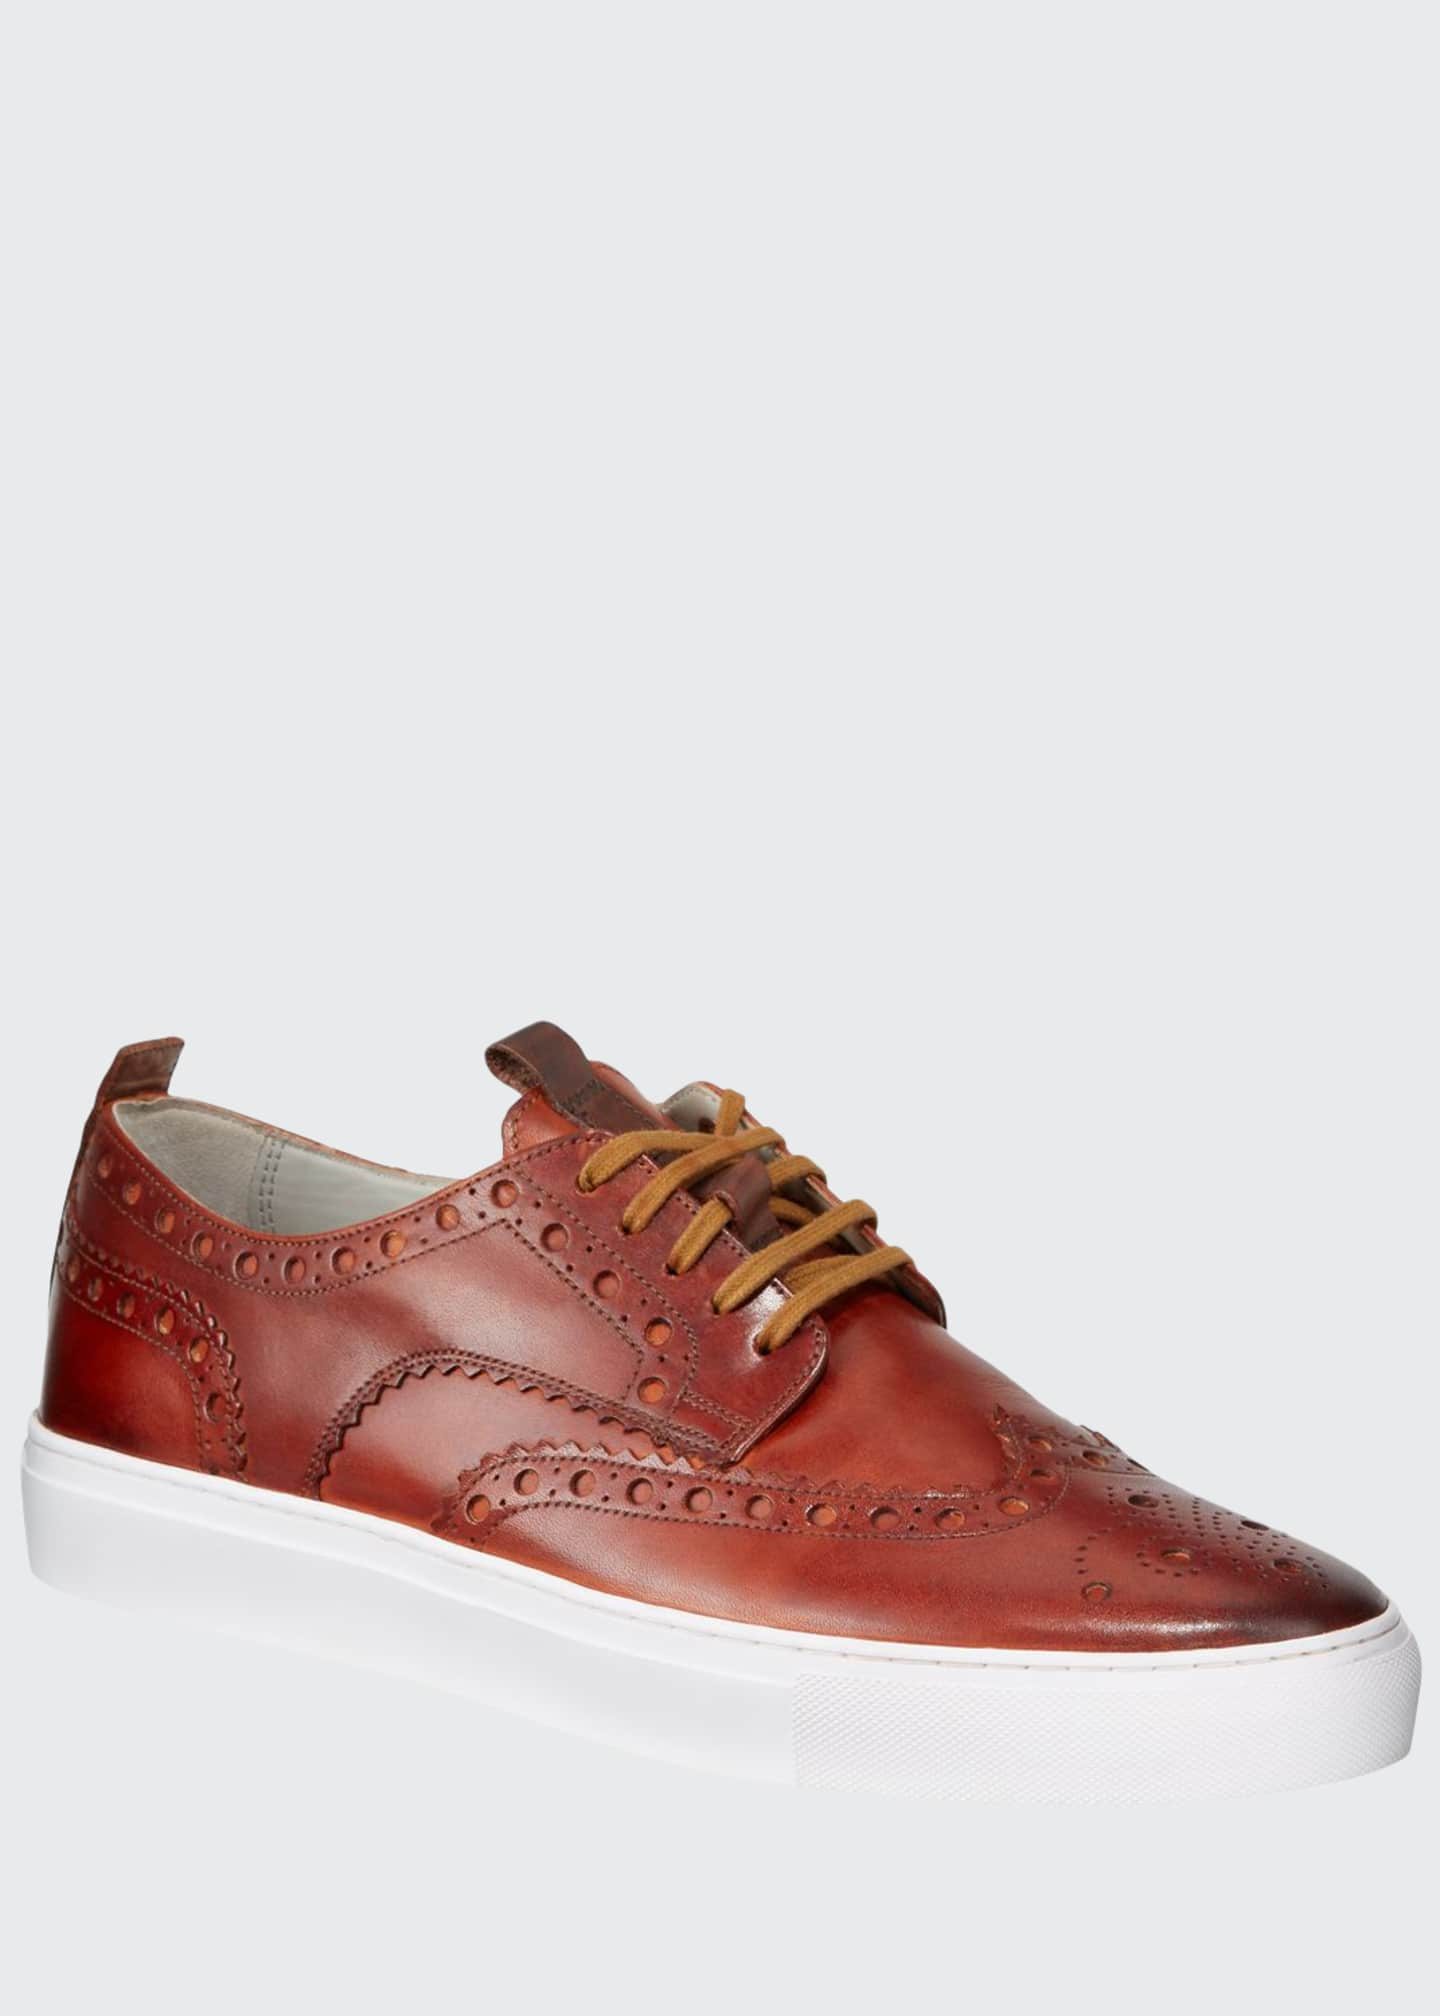 Grenson Limited Men's Leather Brogue Sneakers